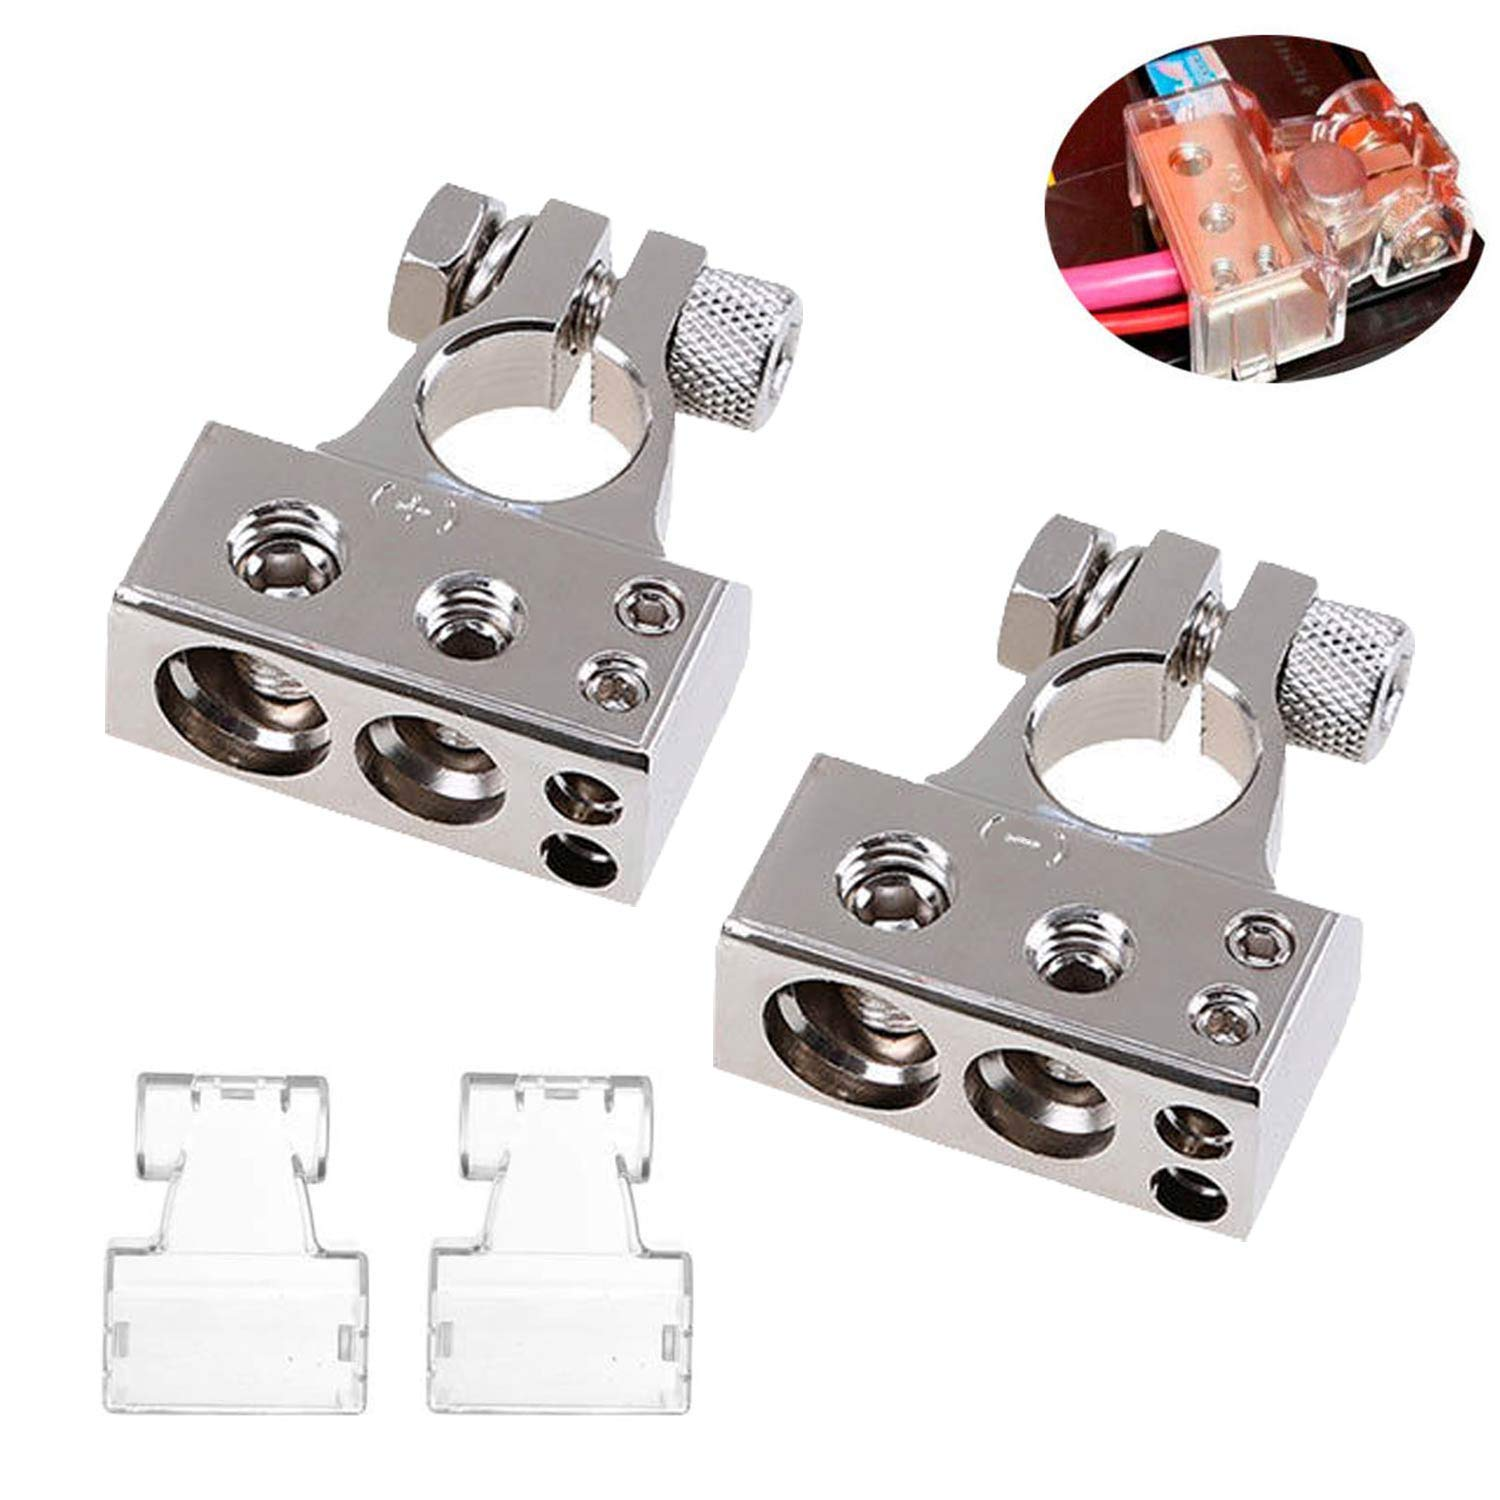 COROTC Battery Terminal Connectors, 0/4/8/10 Gauge AWG Positive Negative, with 2 Clear Covers & Shims, Auto Car Audio Marine Boat Modification ¡ by COROTC